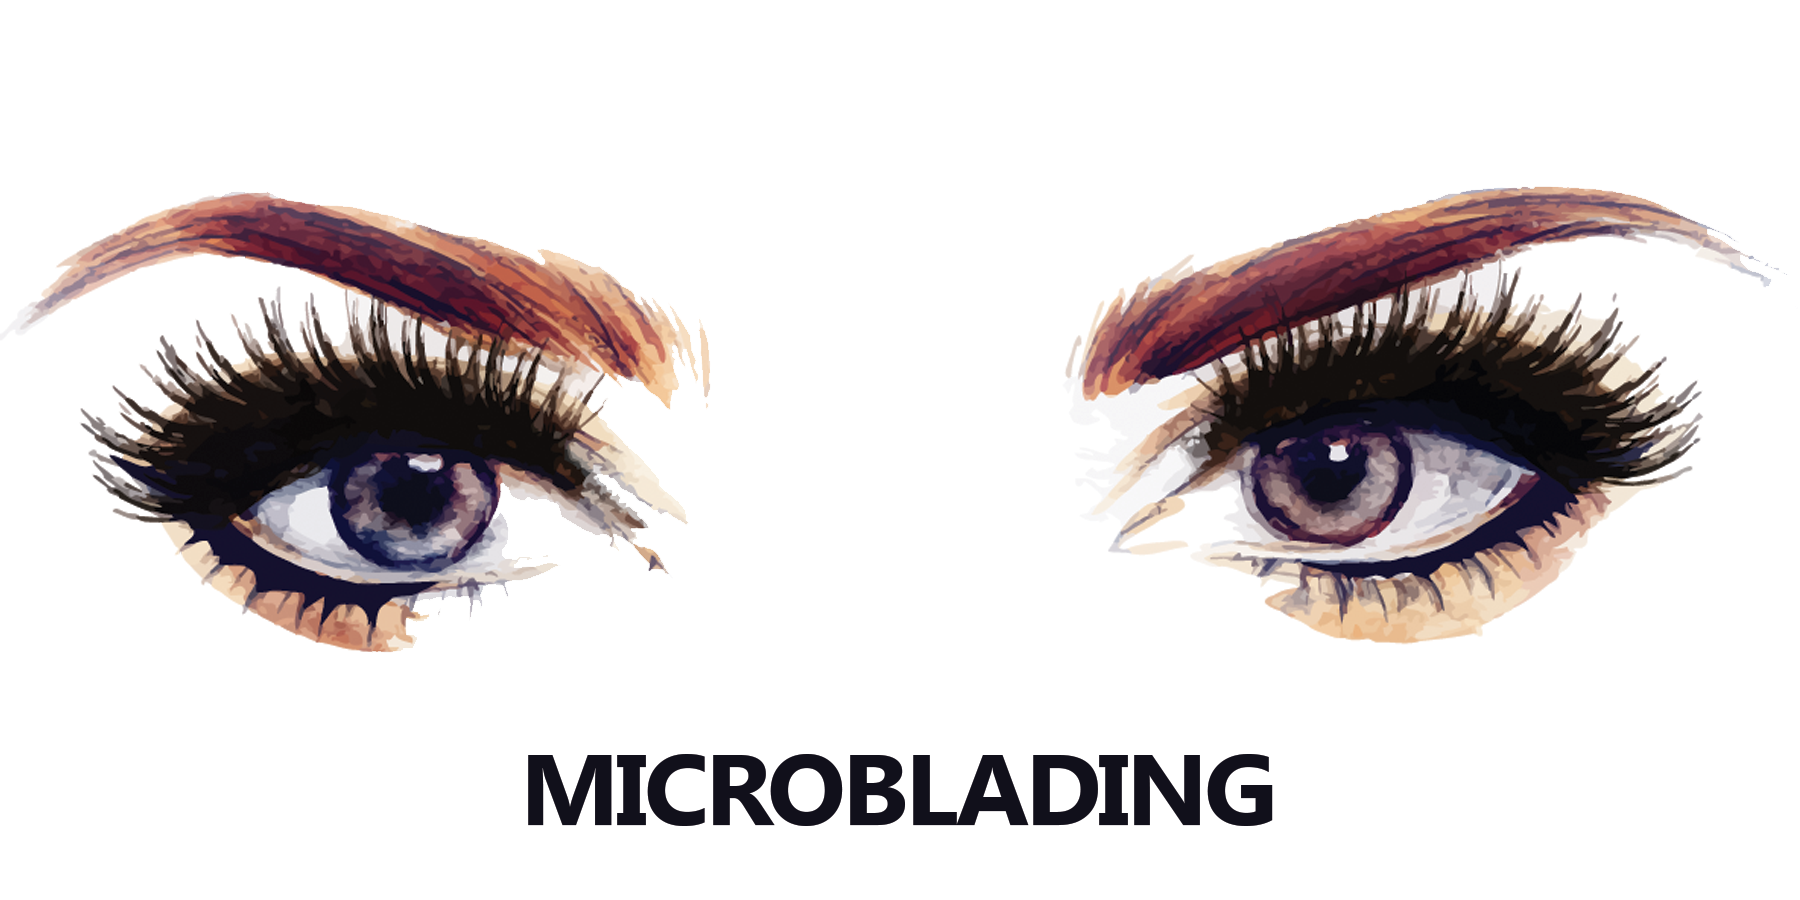 Microblading Training Workshop Glam D Chicago Makeup Eyelash Beauty Academy Microblading Permanent Makeup Eyebrows Microblading Eyebrows